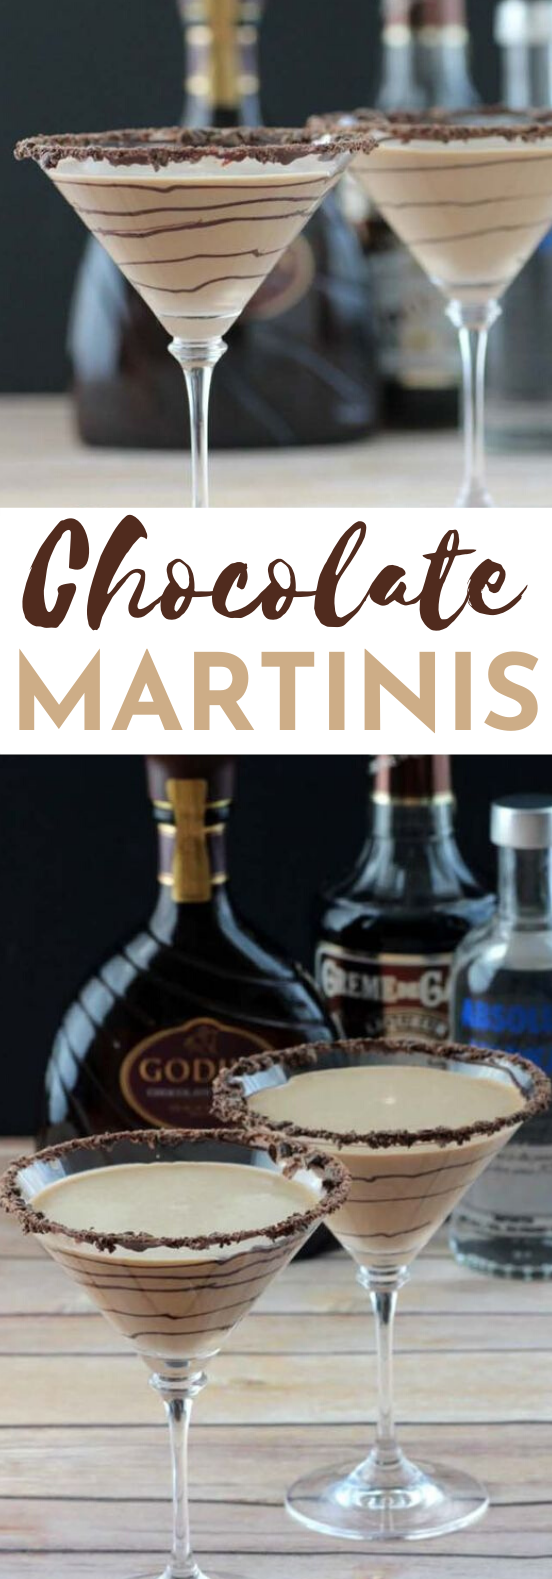 Chocolate Martini's #drinks #alcohol #cocktails #party #chocolate